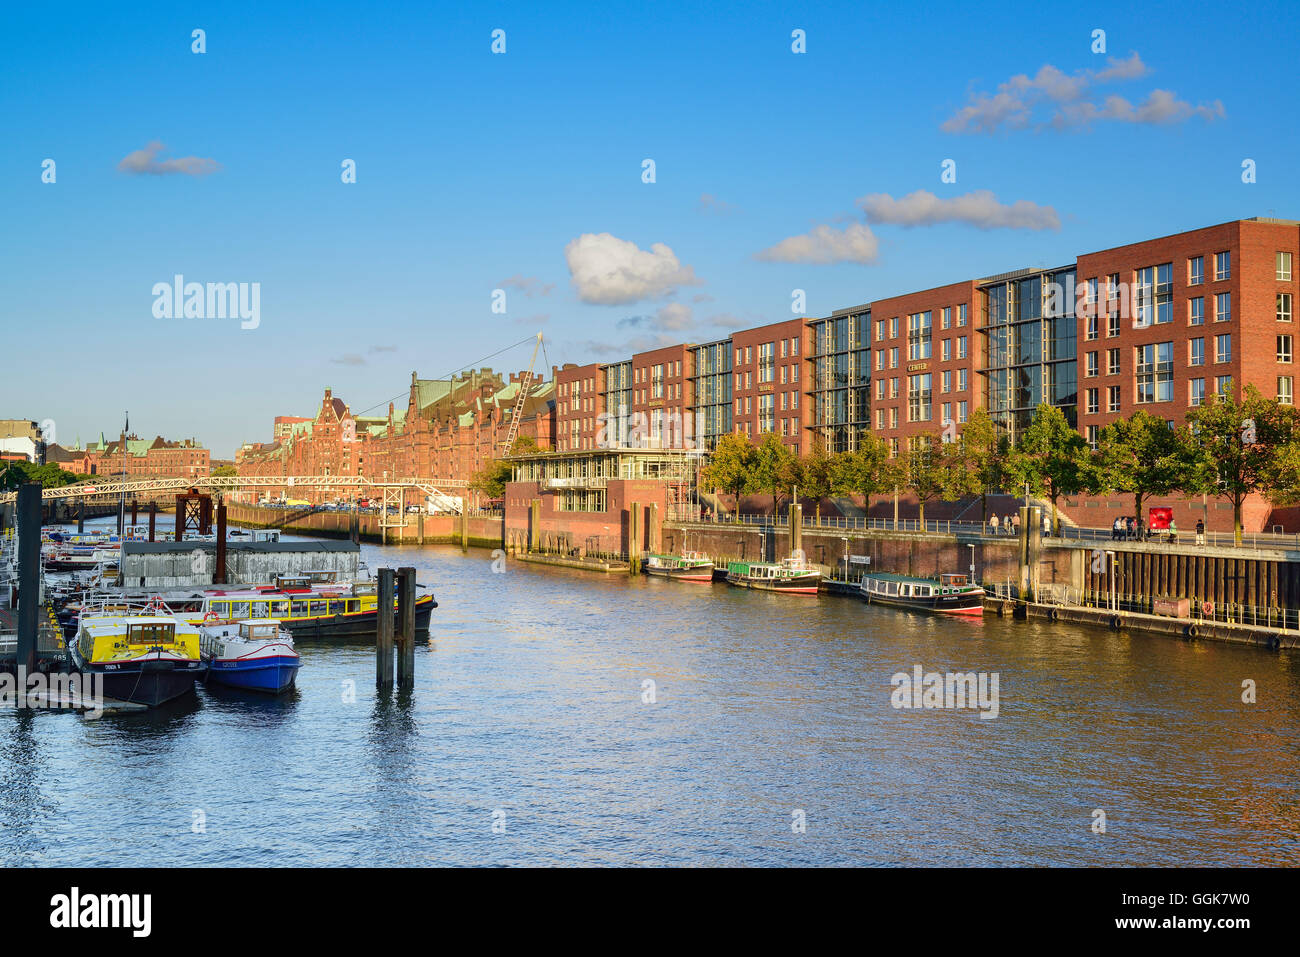 Inland port with old and modern buildings of the old Warehouse district, Warehouse district, Speicherstadt, Hamburg, Stock Photo